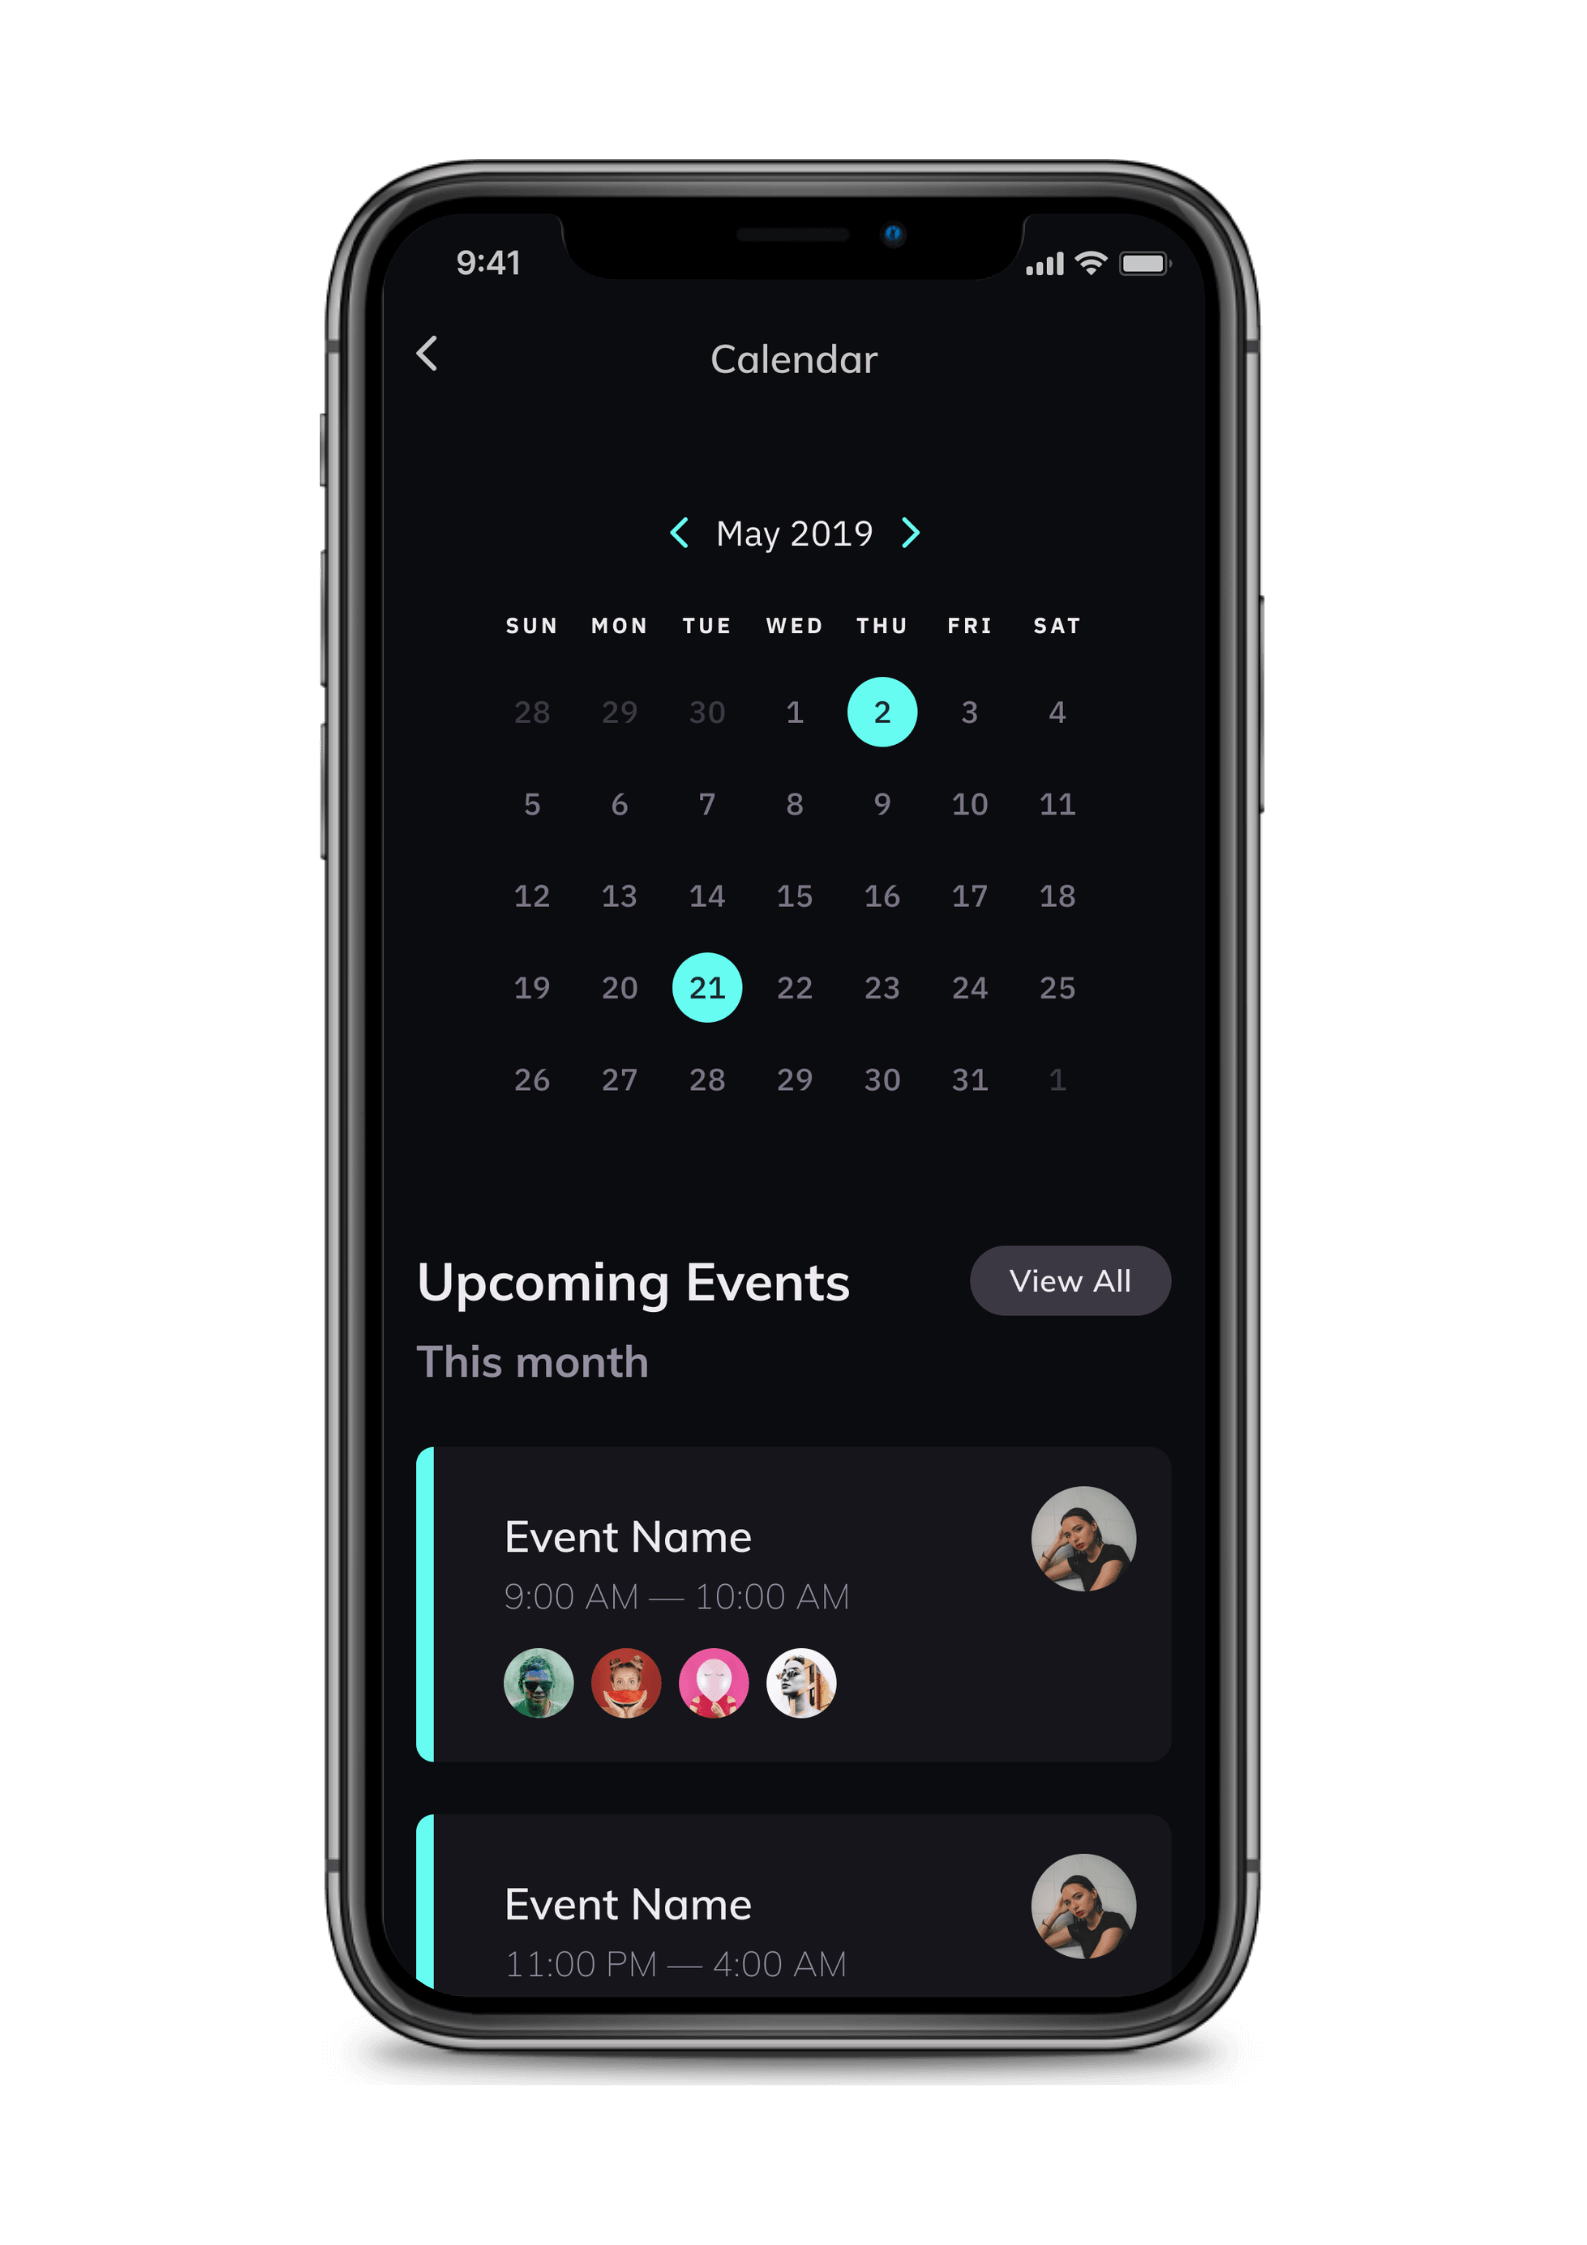 The Backstage App Upcoming Events